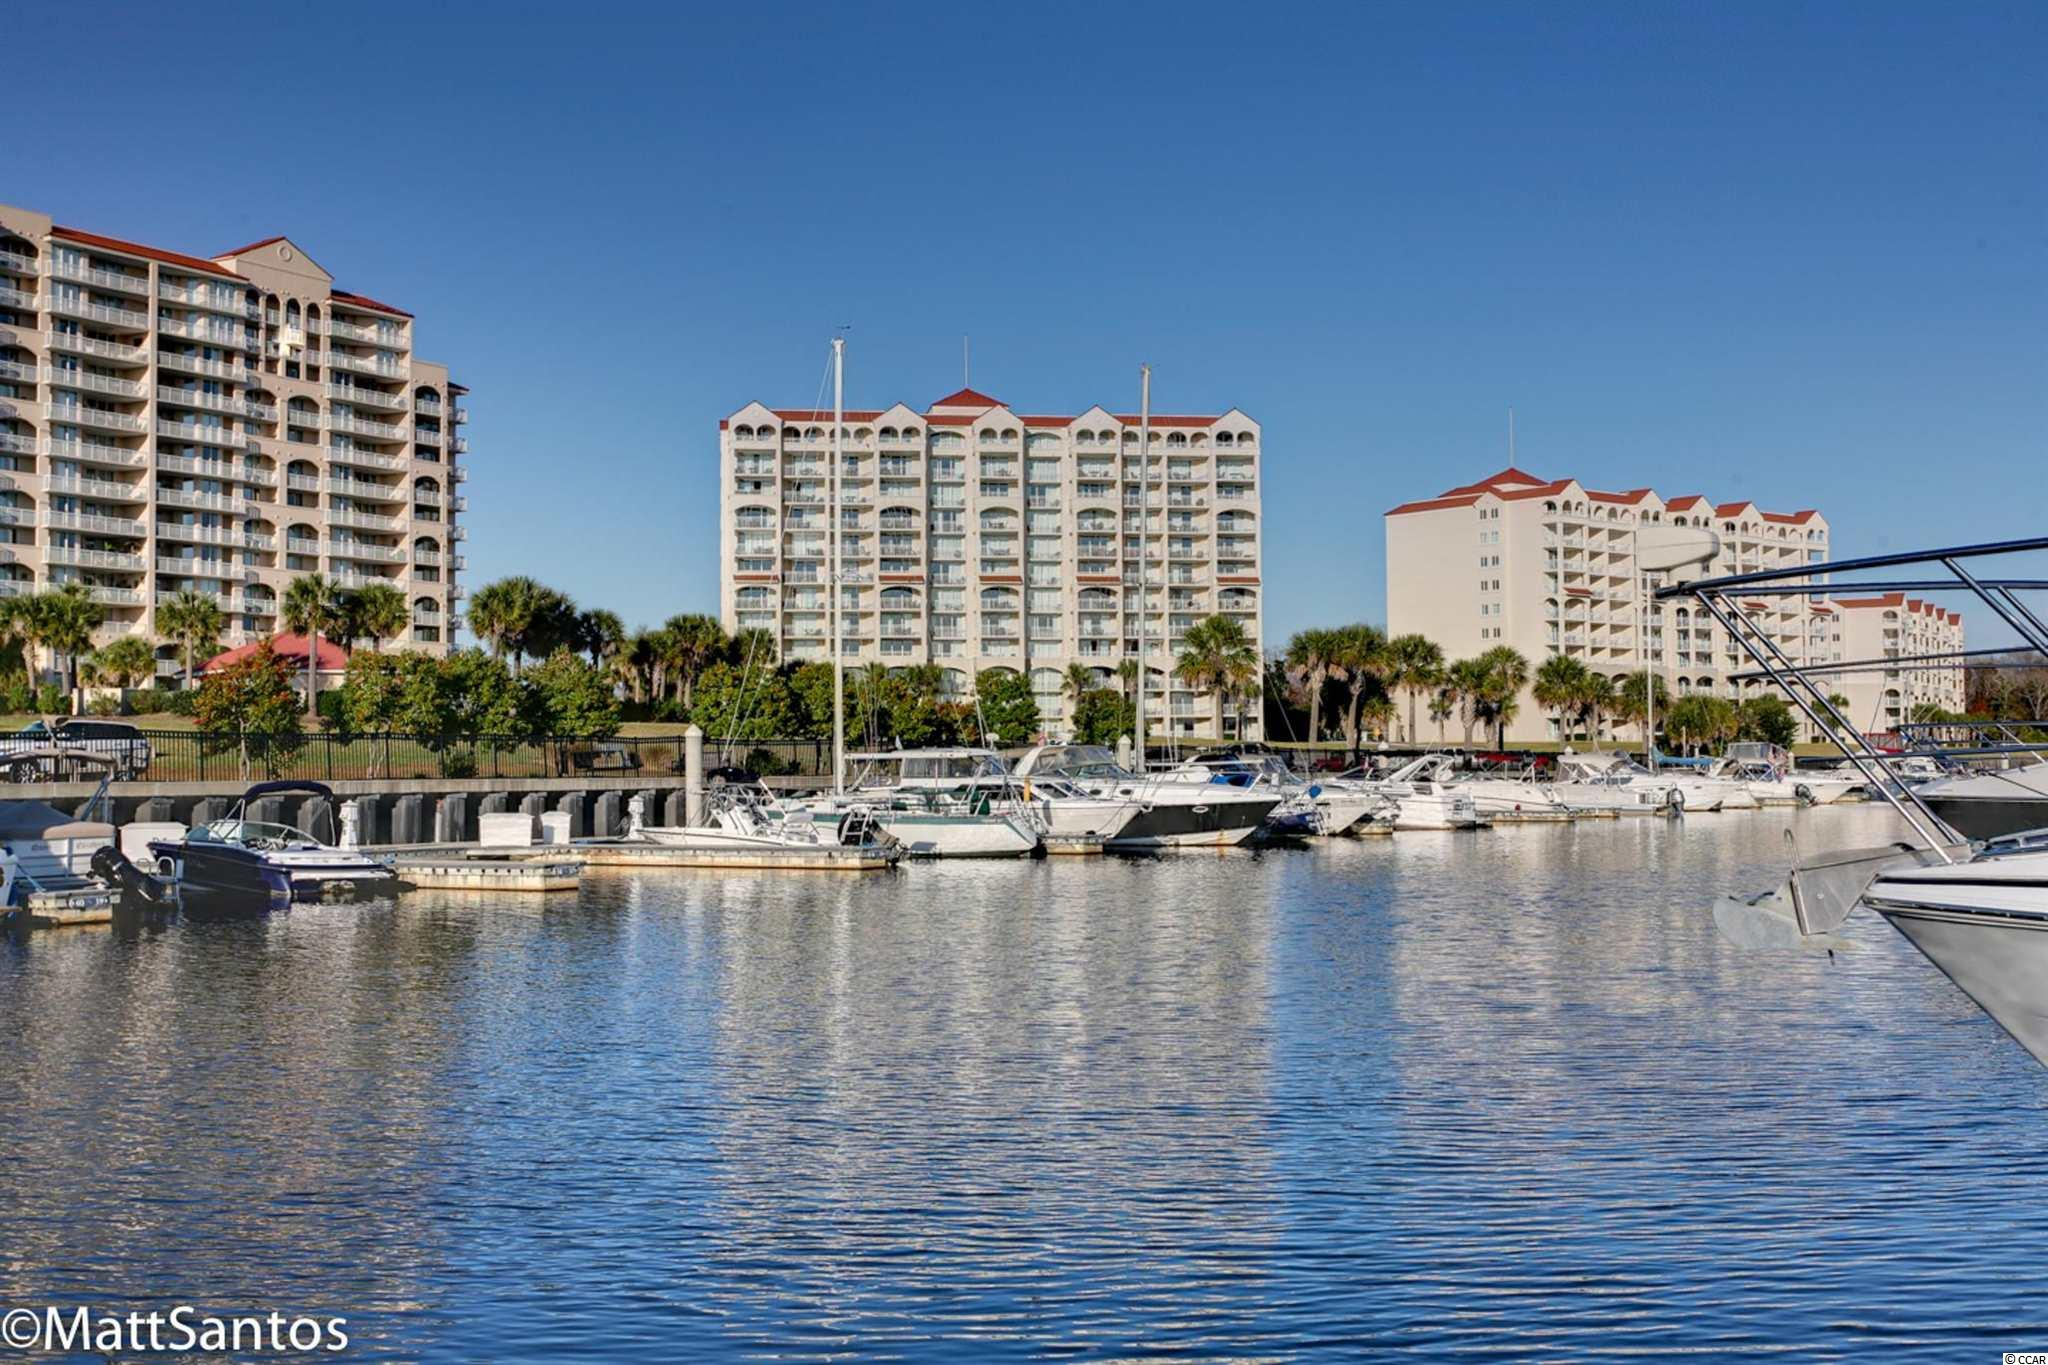 RARE OPPORTUNITY!!! If you love Waterway Living, this beautifully furnished, 4 bedroom/4 bathroom condo with TWO SEPERATE BALCONIES at Yacht Club Villas in Barefoot Resort is A MUST SEE! Enter through the foyer and on each side are the first two bedrooms with their own private bathroom and lockout doors. The spacious kitchen includes all white appliances with a lovely granite countertop. You'll enjoy the pristine vinyl tile and laminate flooring throughout (NO CARPET!!) Washer and dryer are included. This is Coastal Living at its very best with Luxurious Amenities in the North Myrtle Beach area and watch the boats in the marina on the Intercoastal Waterway. Owners are allowed pets. Bring your golf clubs and enjoy a round of golf at one of our 4 top rated golf courses designed by Greg Norman, Davis Love, Pete Dye and Tom Fazio. You are just minutes from The BEST shopping, dining, and entertainment along the Grand Strand. This will be a perfect investment property, second home, or primary residence. HURRY THIS UNIT WON'T LAST LONG!